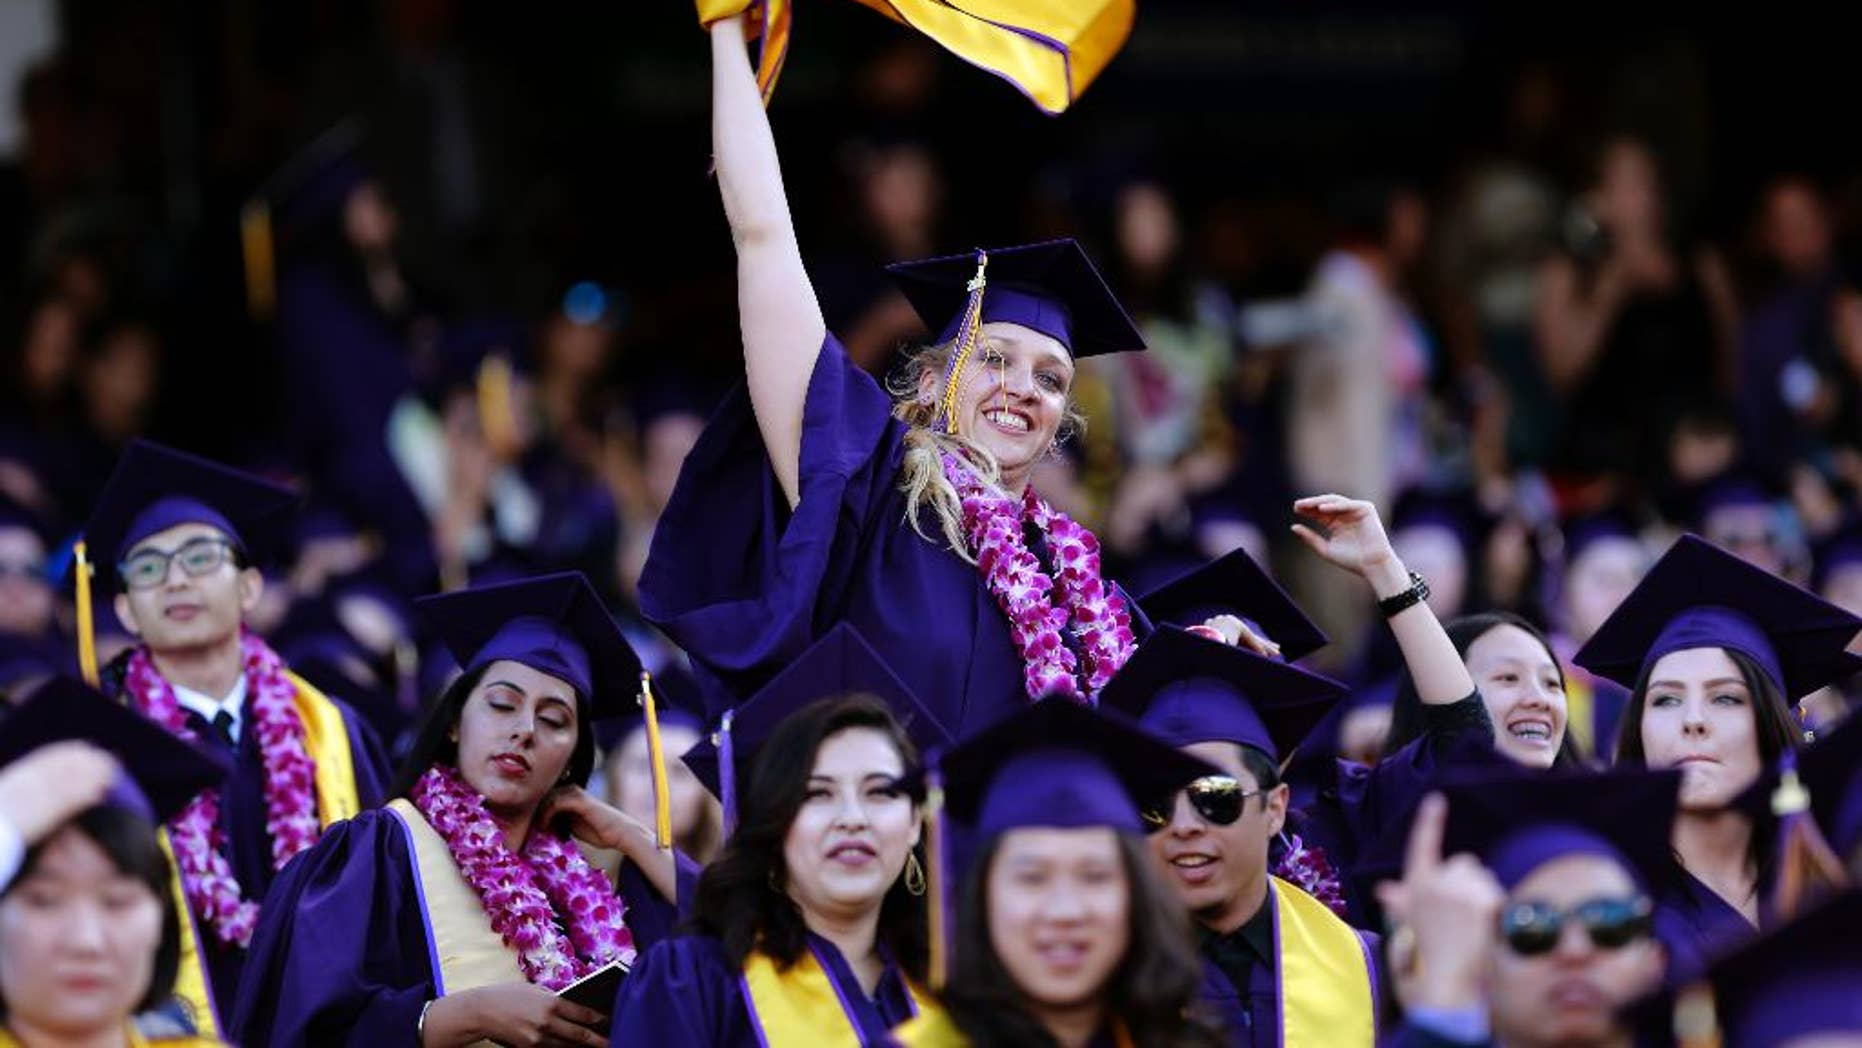 In this photo taken Friday, May 27, 2016, Jillian Sobol show her excitement during her college graduation ceremony at AT&T Park in San Francisco. More than 30 years after she was abandoned as a newborn in a dorm at San Francisco State University, Sobol has graduated from the school where she began her life. Sobol, 31, graduated with a bachelor's degree. She was left by a 19-year-old sophomore, who had concealed her pregnancy, in a box in the dorm laundry room on Nov. 5, 1984. (Michael Macor/San Francisco Chronicle via AP)